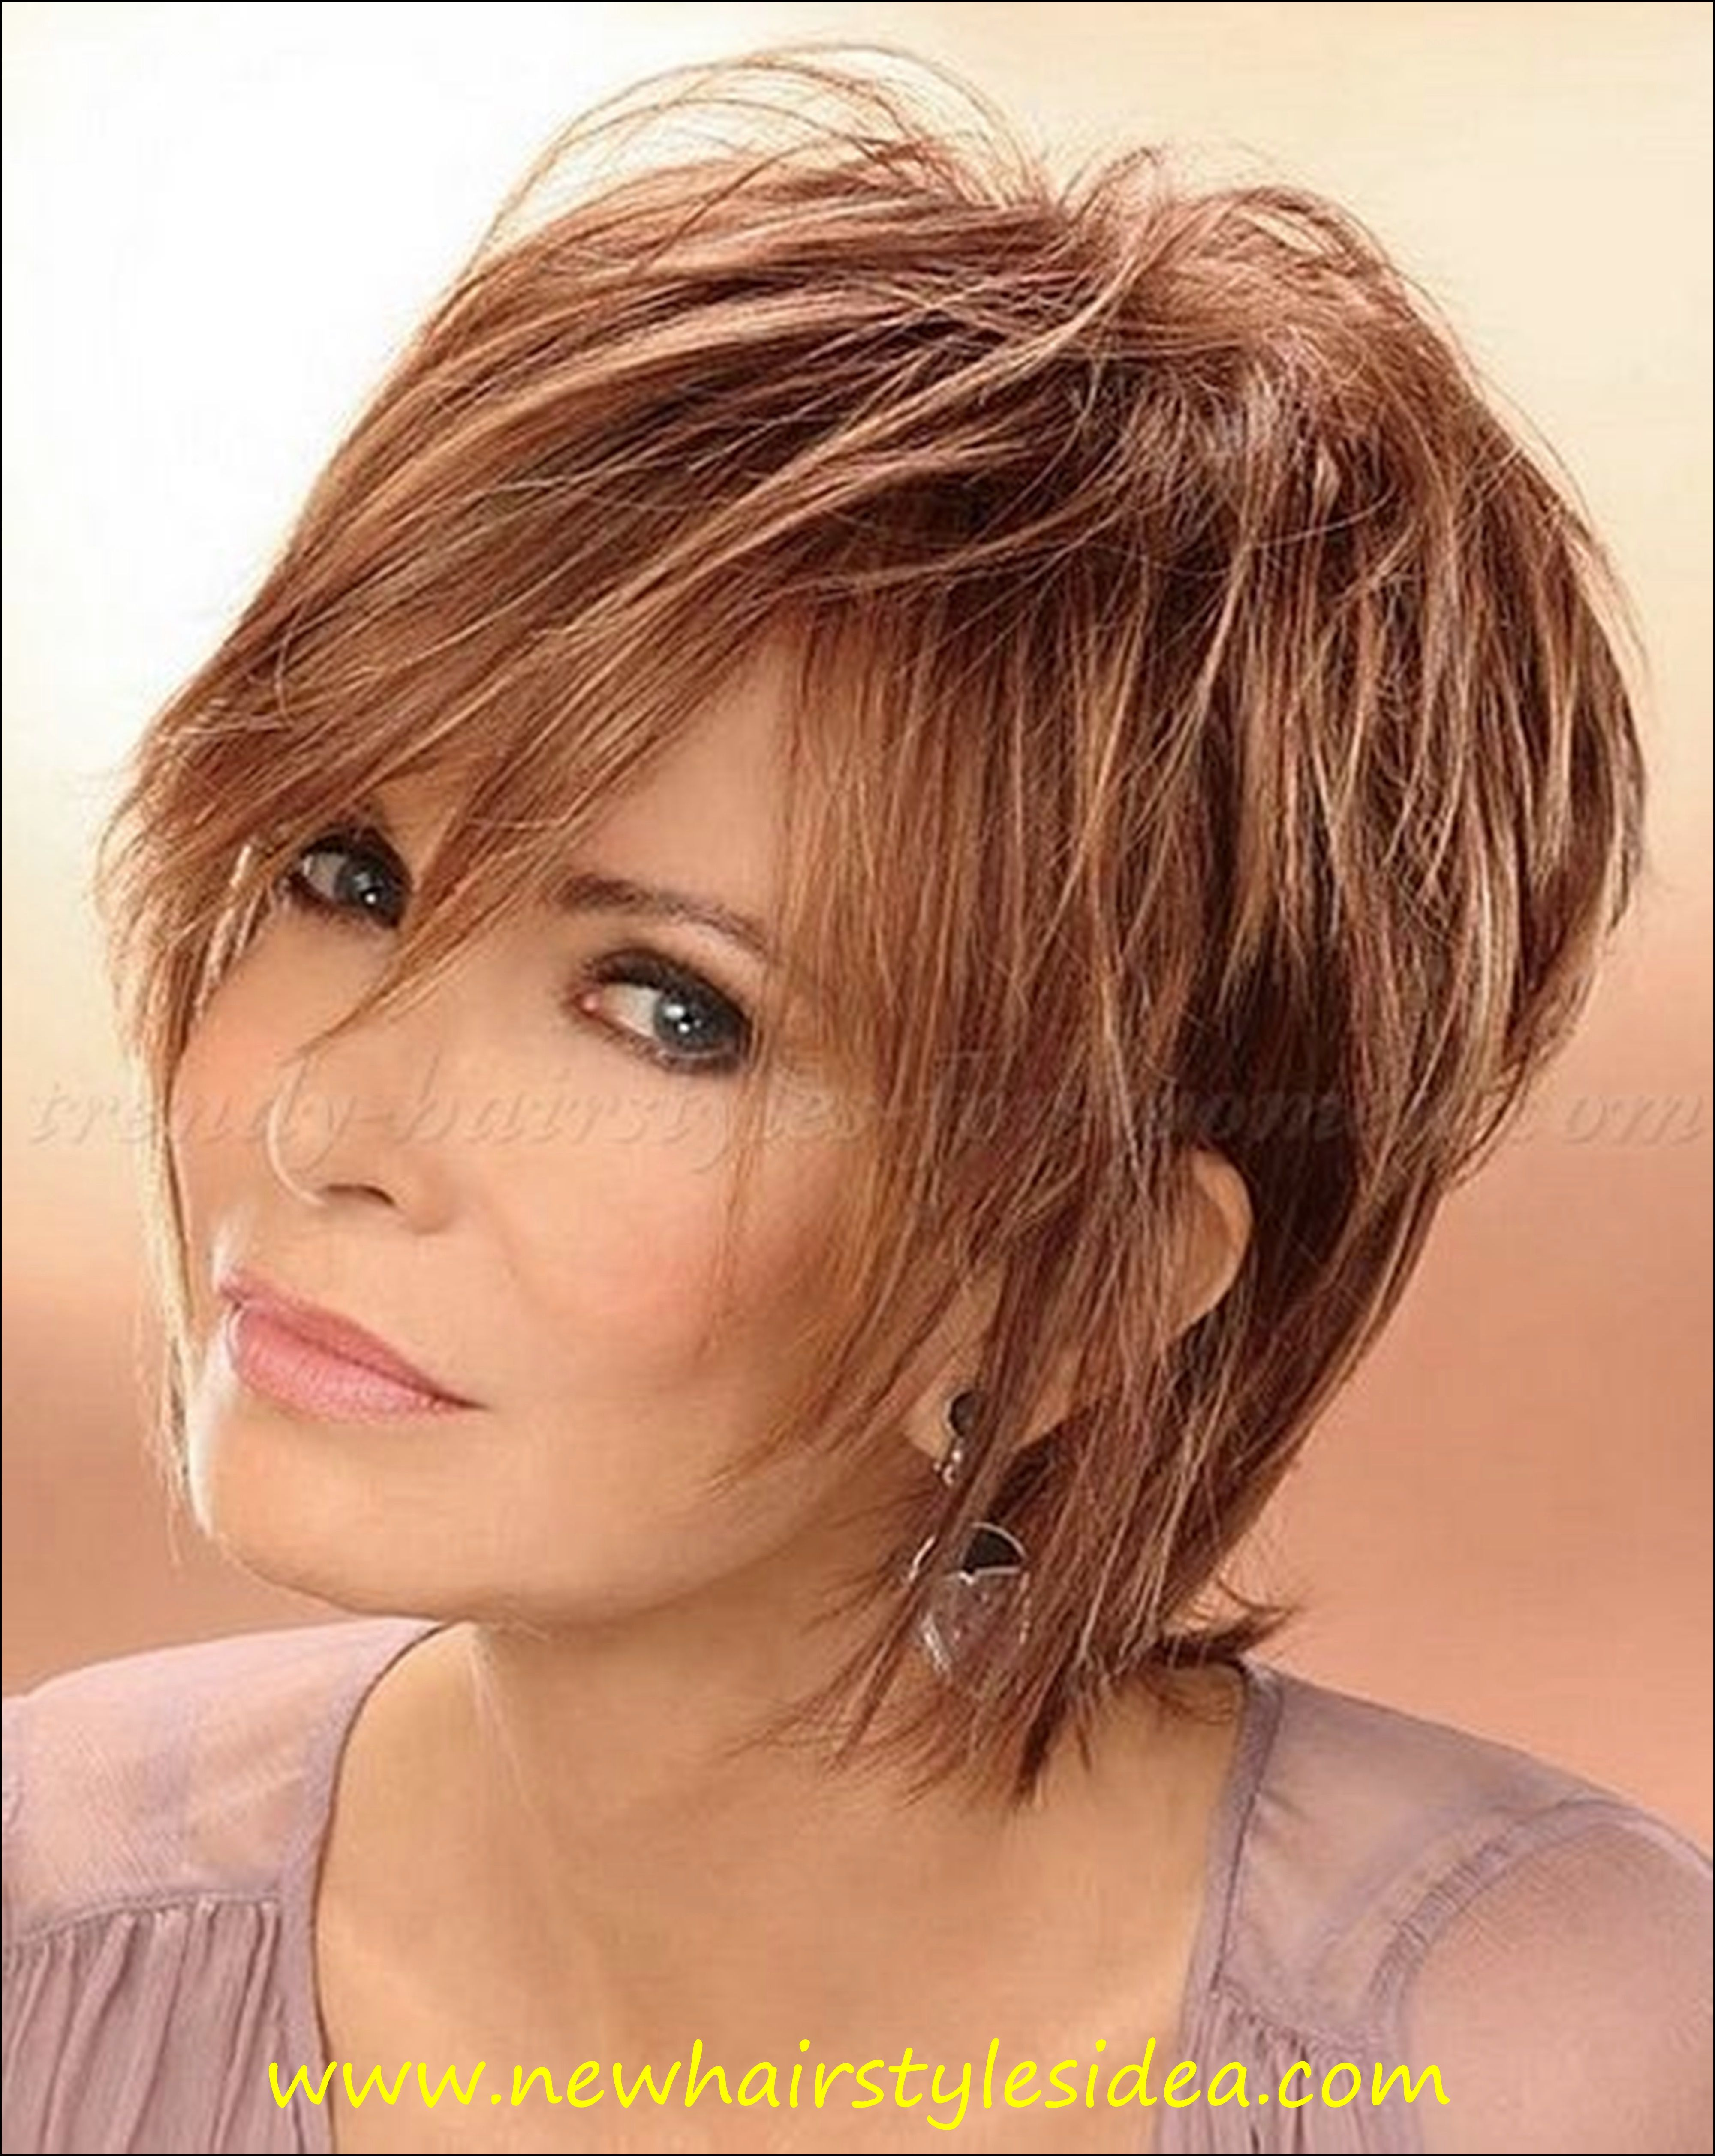 New Hairstyles For Women 2015 Women Hairstyles 50's 36  2015 New Hairstyles Idea  Cortes